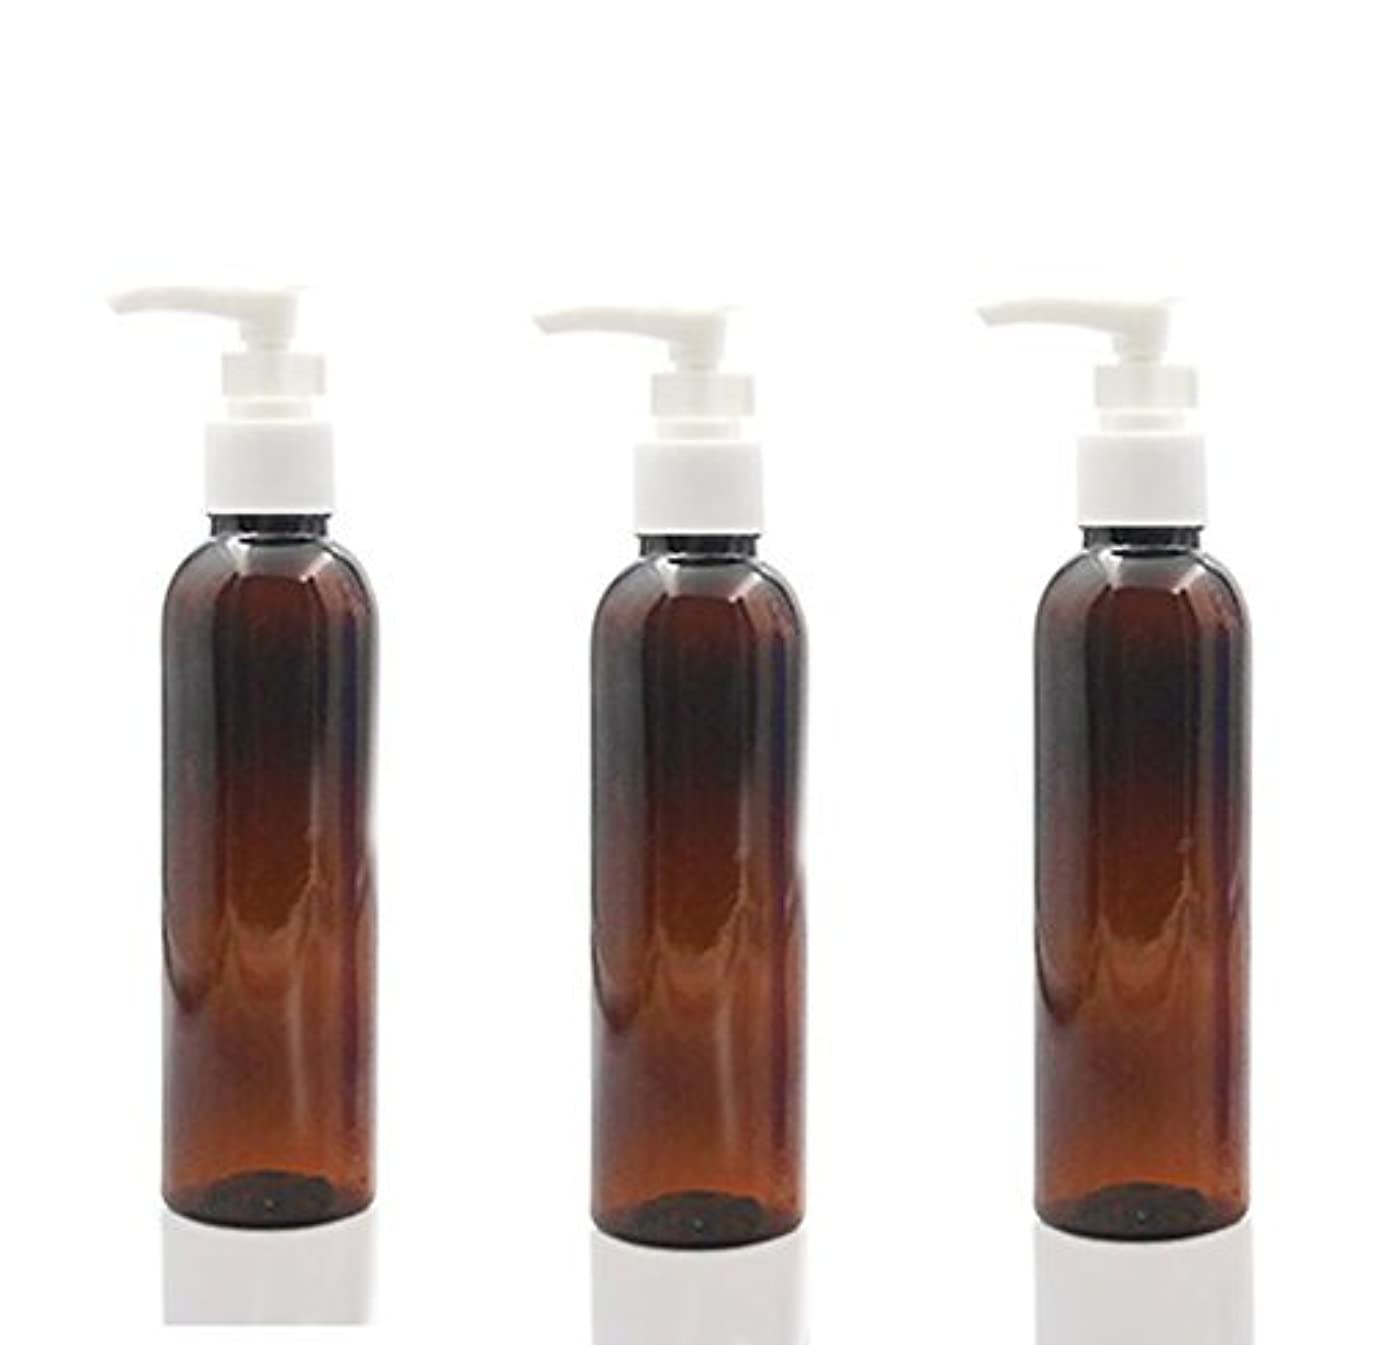 ミルクサークルワイヤー3PCS 150ml Plastic Round Pump Bottles for Cooking Sauces Essential Oils Lotions Liquid Soaps or Organic Beauty...